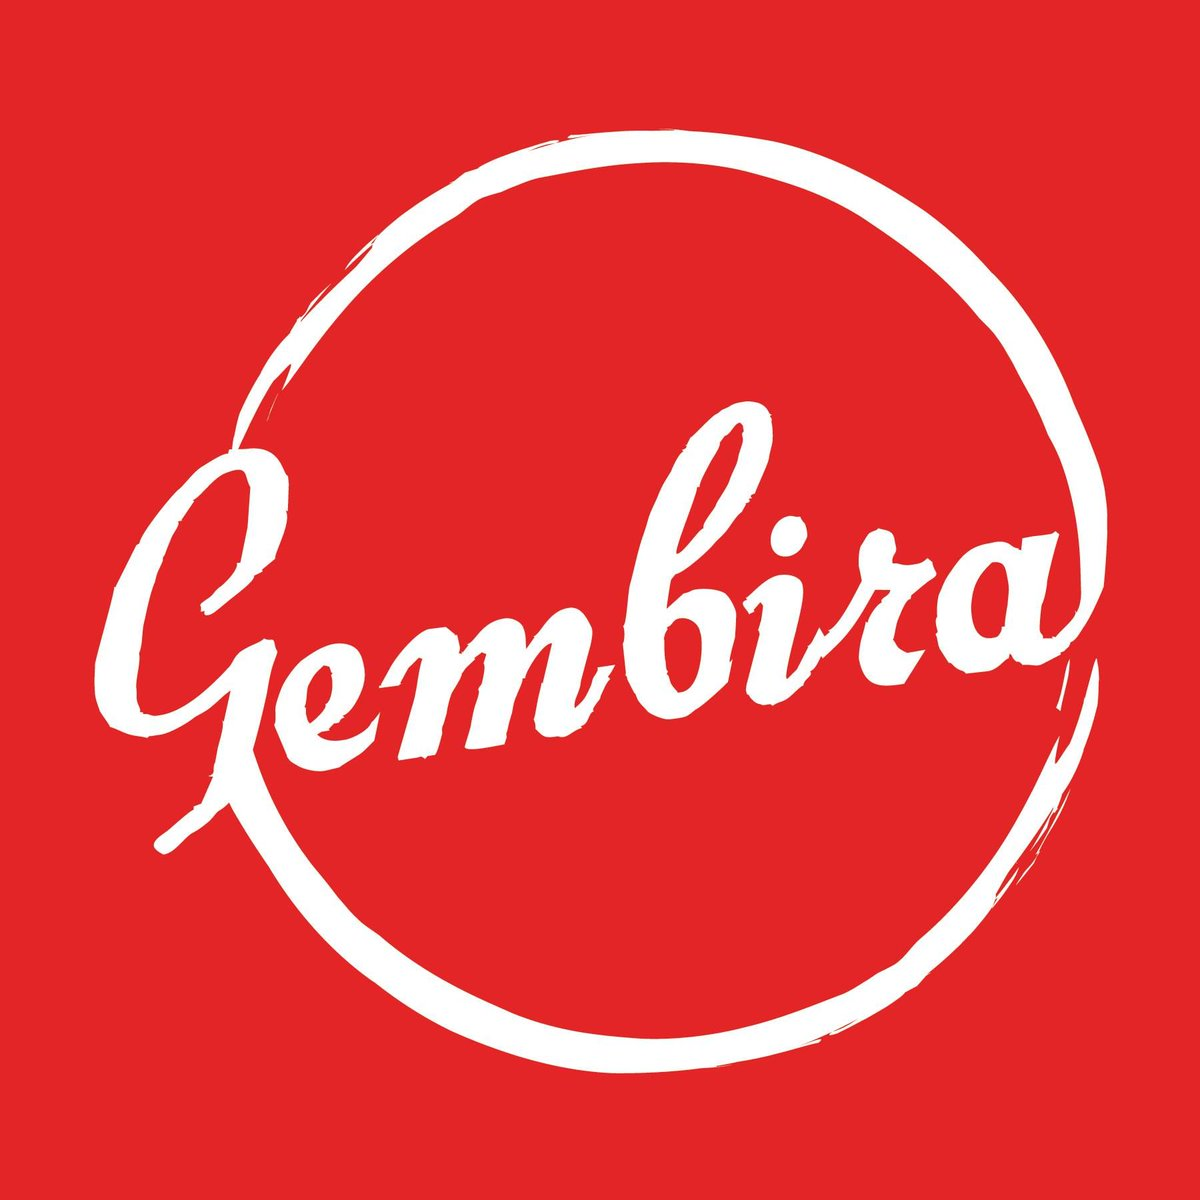 Gembira Promotions & Discounts